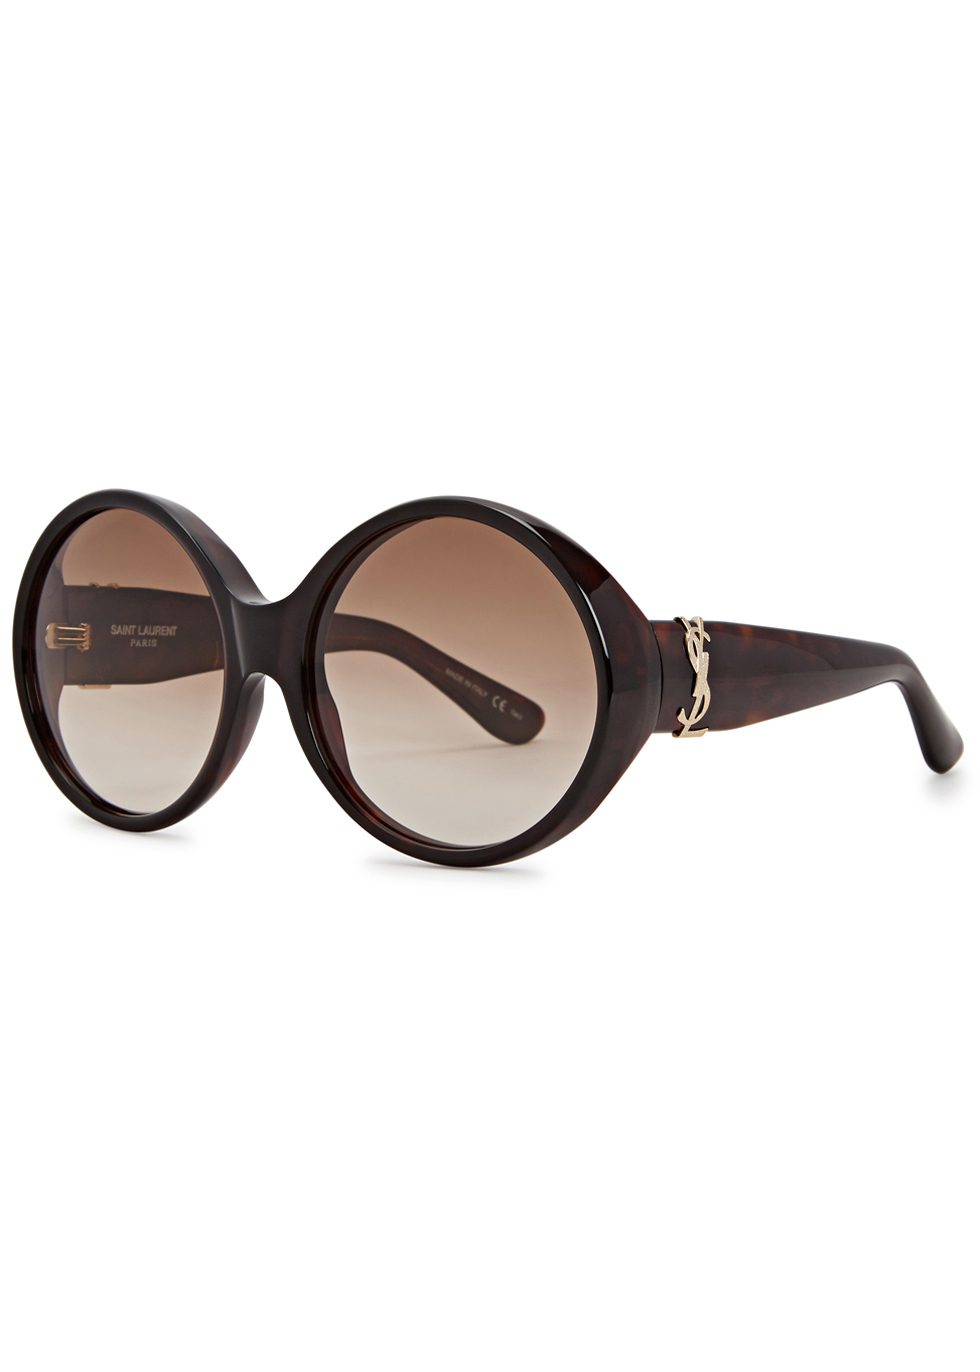 Sl M1 Oversized Round Frame Sunglasses - predominant colour: chocolate brown; occasions: casual, holiday; style: round; size: large; material: plastic/rubber; pattern: plain; finish: plain; season: a/w 2016